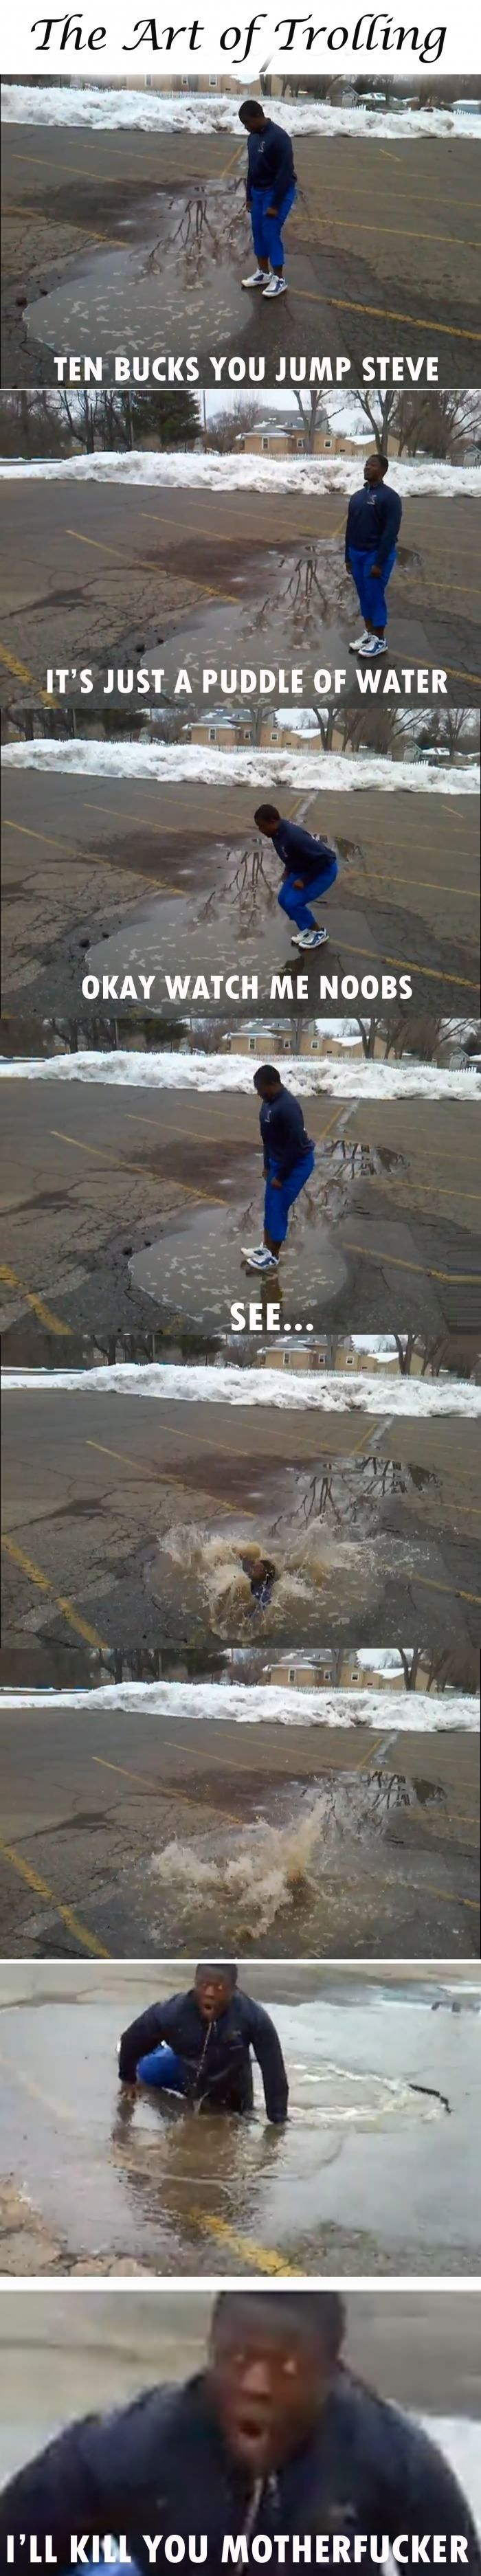 The art of trolling  - funny pictures #funnypictures